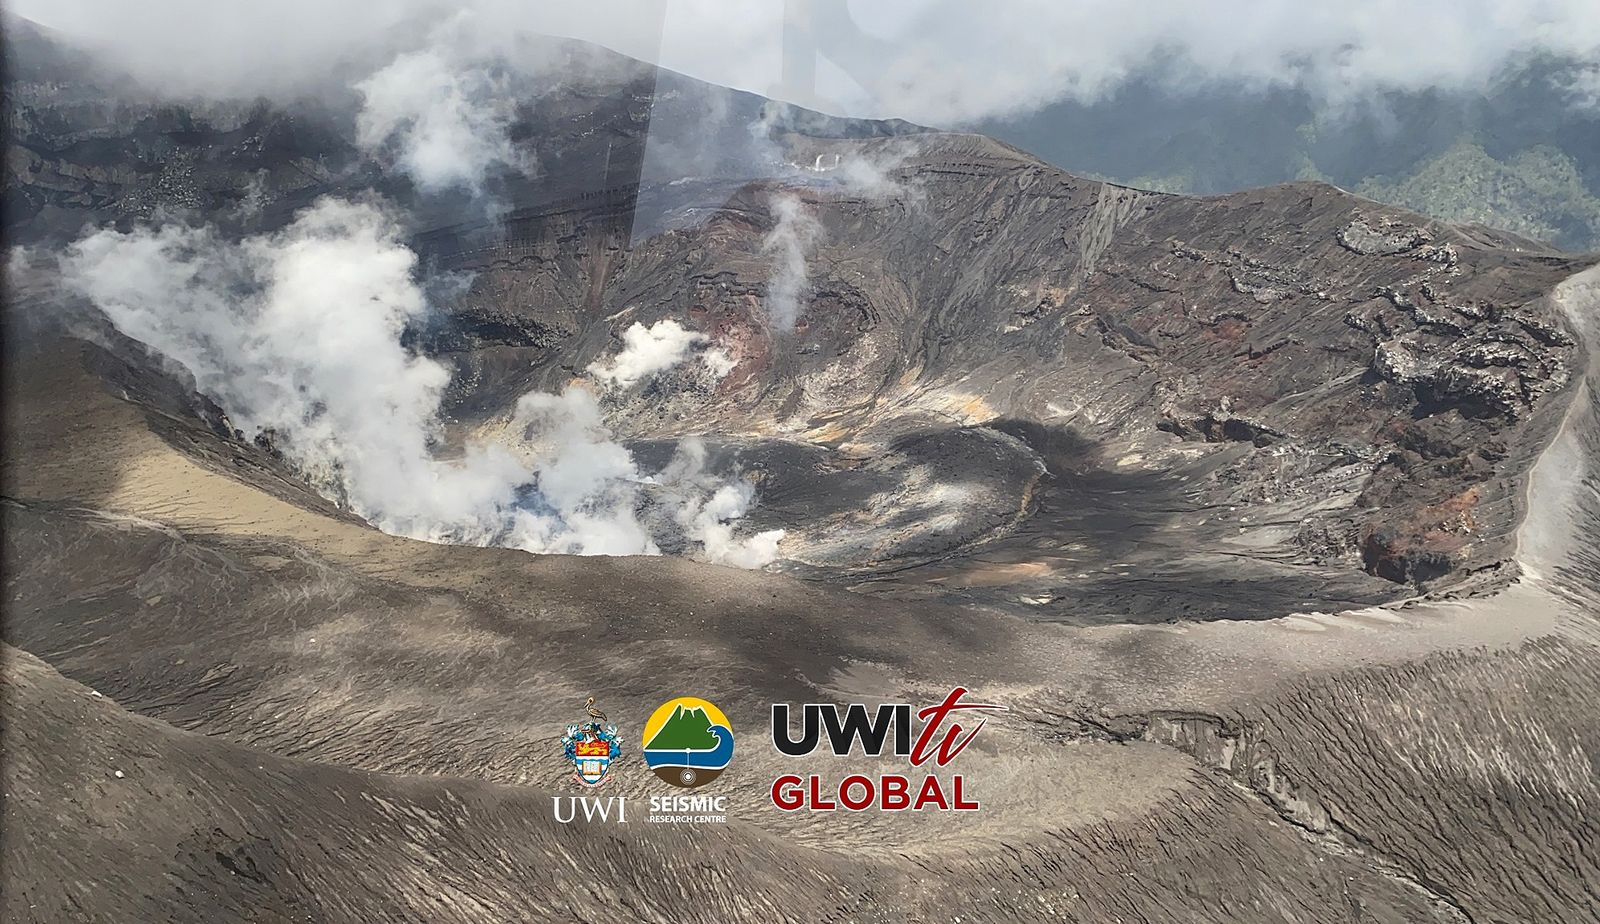 Soufriere de St. Vincent - steam emissions in the crater - flyby by Javid Collins, UWITV on 06.21.2021.